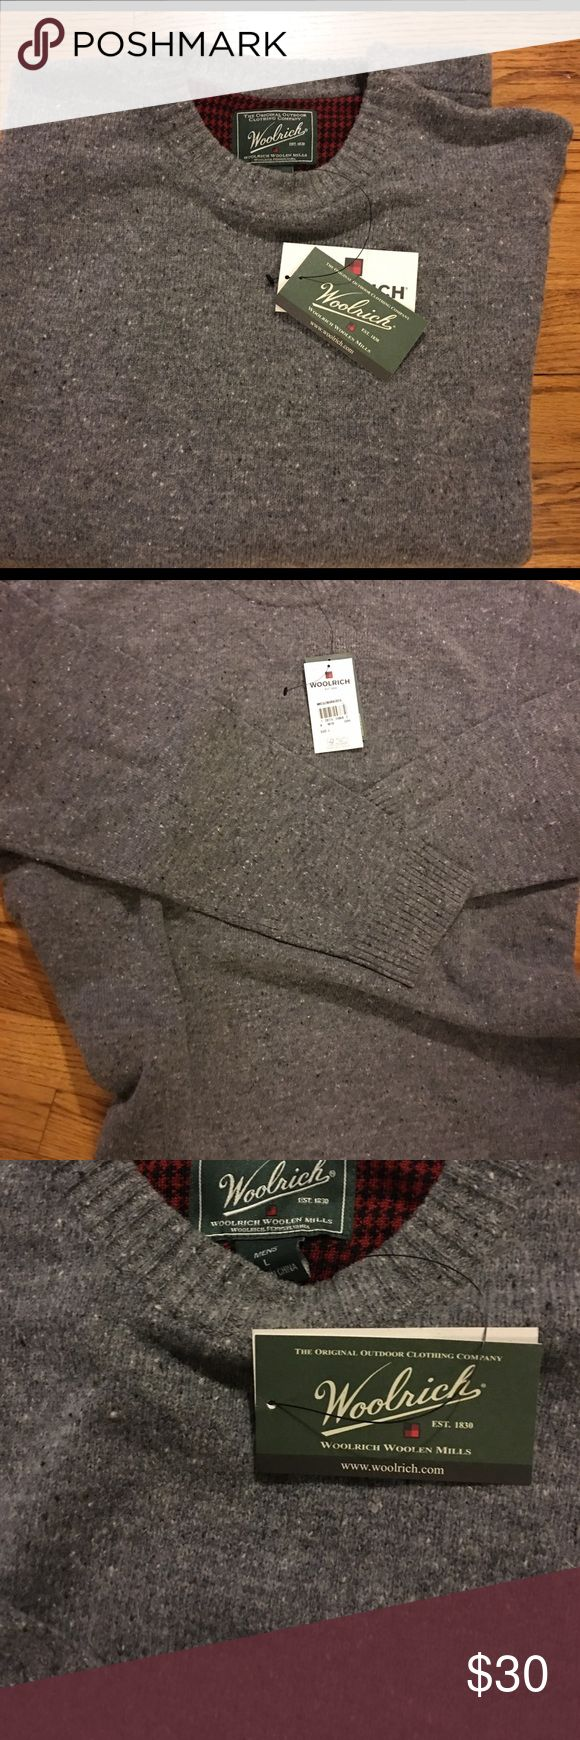 Brand New Men's Woolrich Sweater Gray Heather Wool Never Worn Men's lambwool Heather gray crew neck sweater — red houndstooth in the neckline. Perfect for the winter.. even better under the tree! What a great gift  Woolrich Sweaters Crewneck